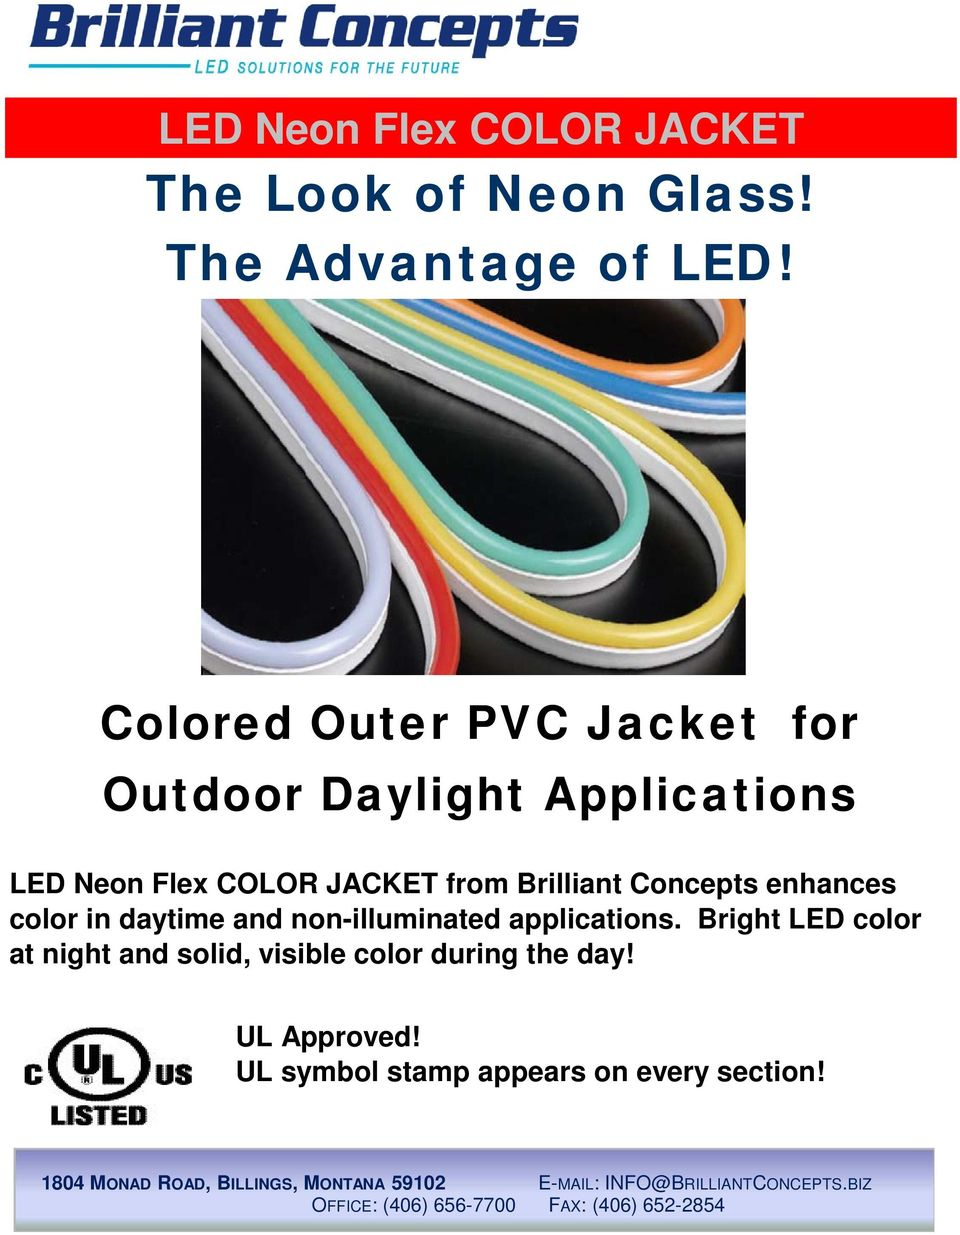 Brilliant Concepts enhances color in daytime and non-illuminated applications.